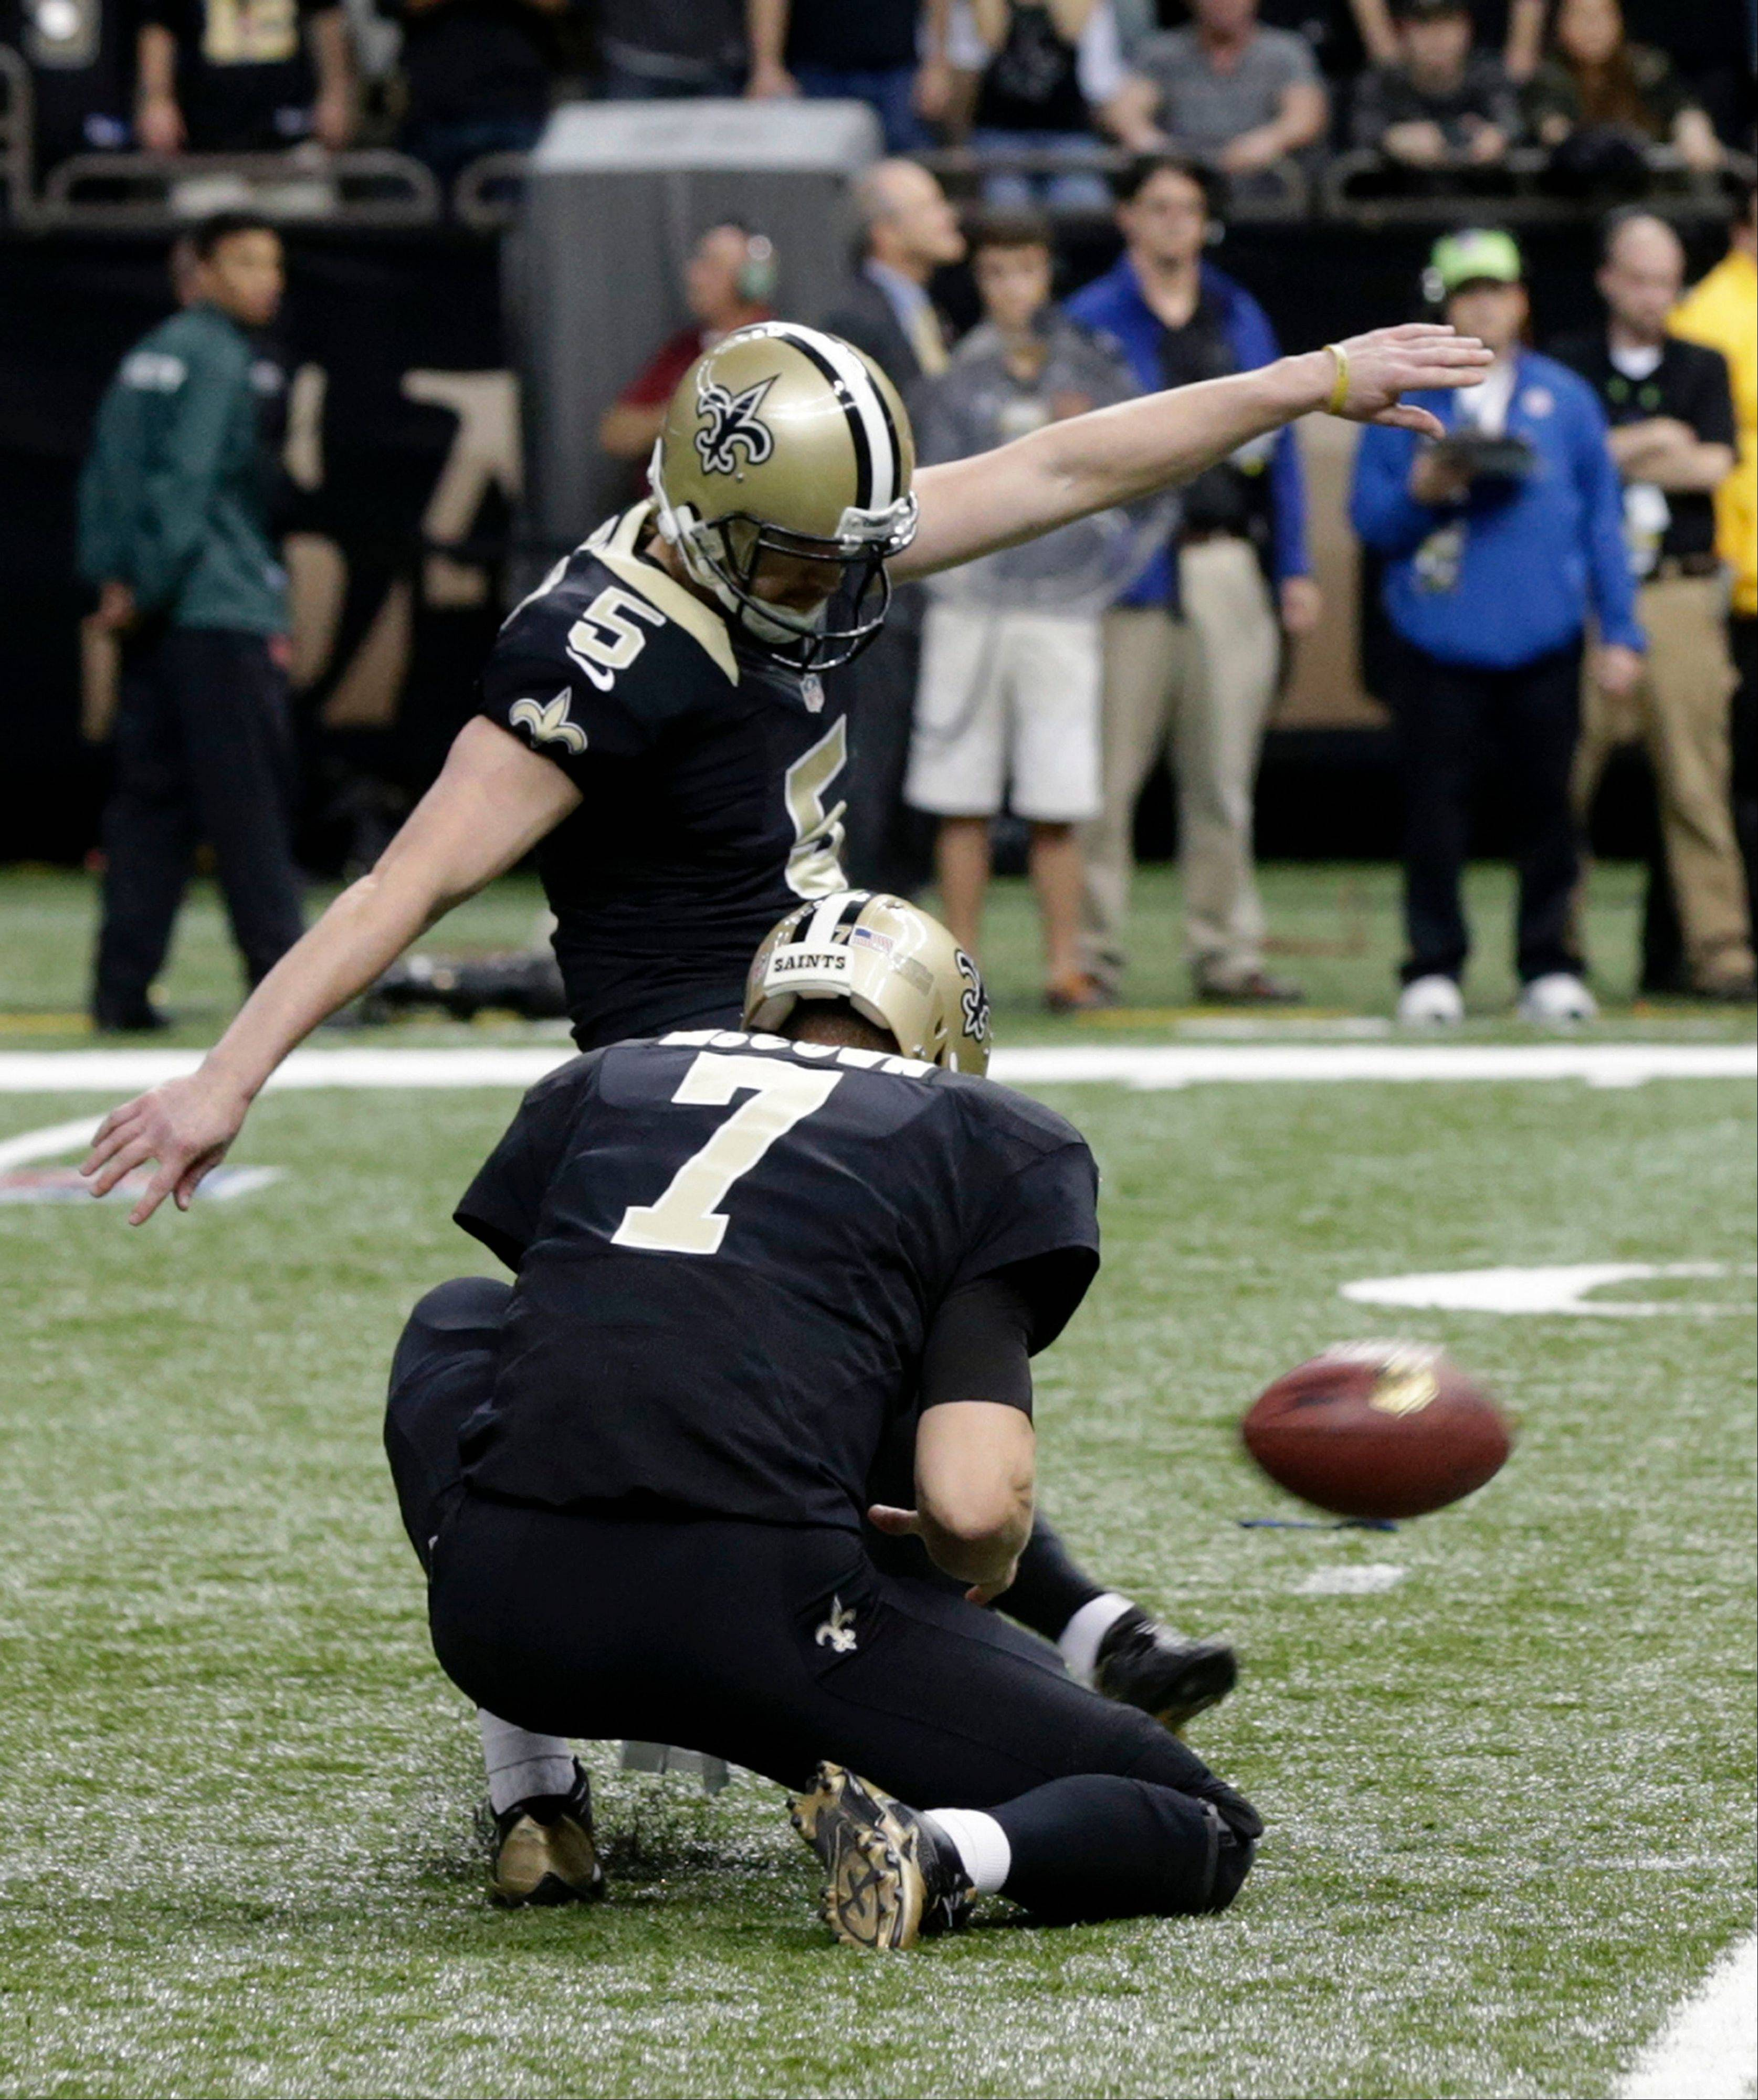 New Orleans Saints kicker Garrett Hartley (5) kicks the game winning field goal as Luke McCown holds at the end of regulation in the second half of an NFL football game against the San Francisco 49ers in New Orleans, Sunday, Nov. 17, 2013. The Saints won 23-20.